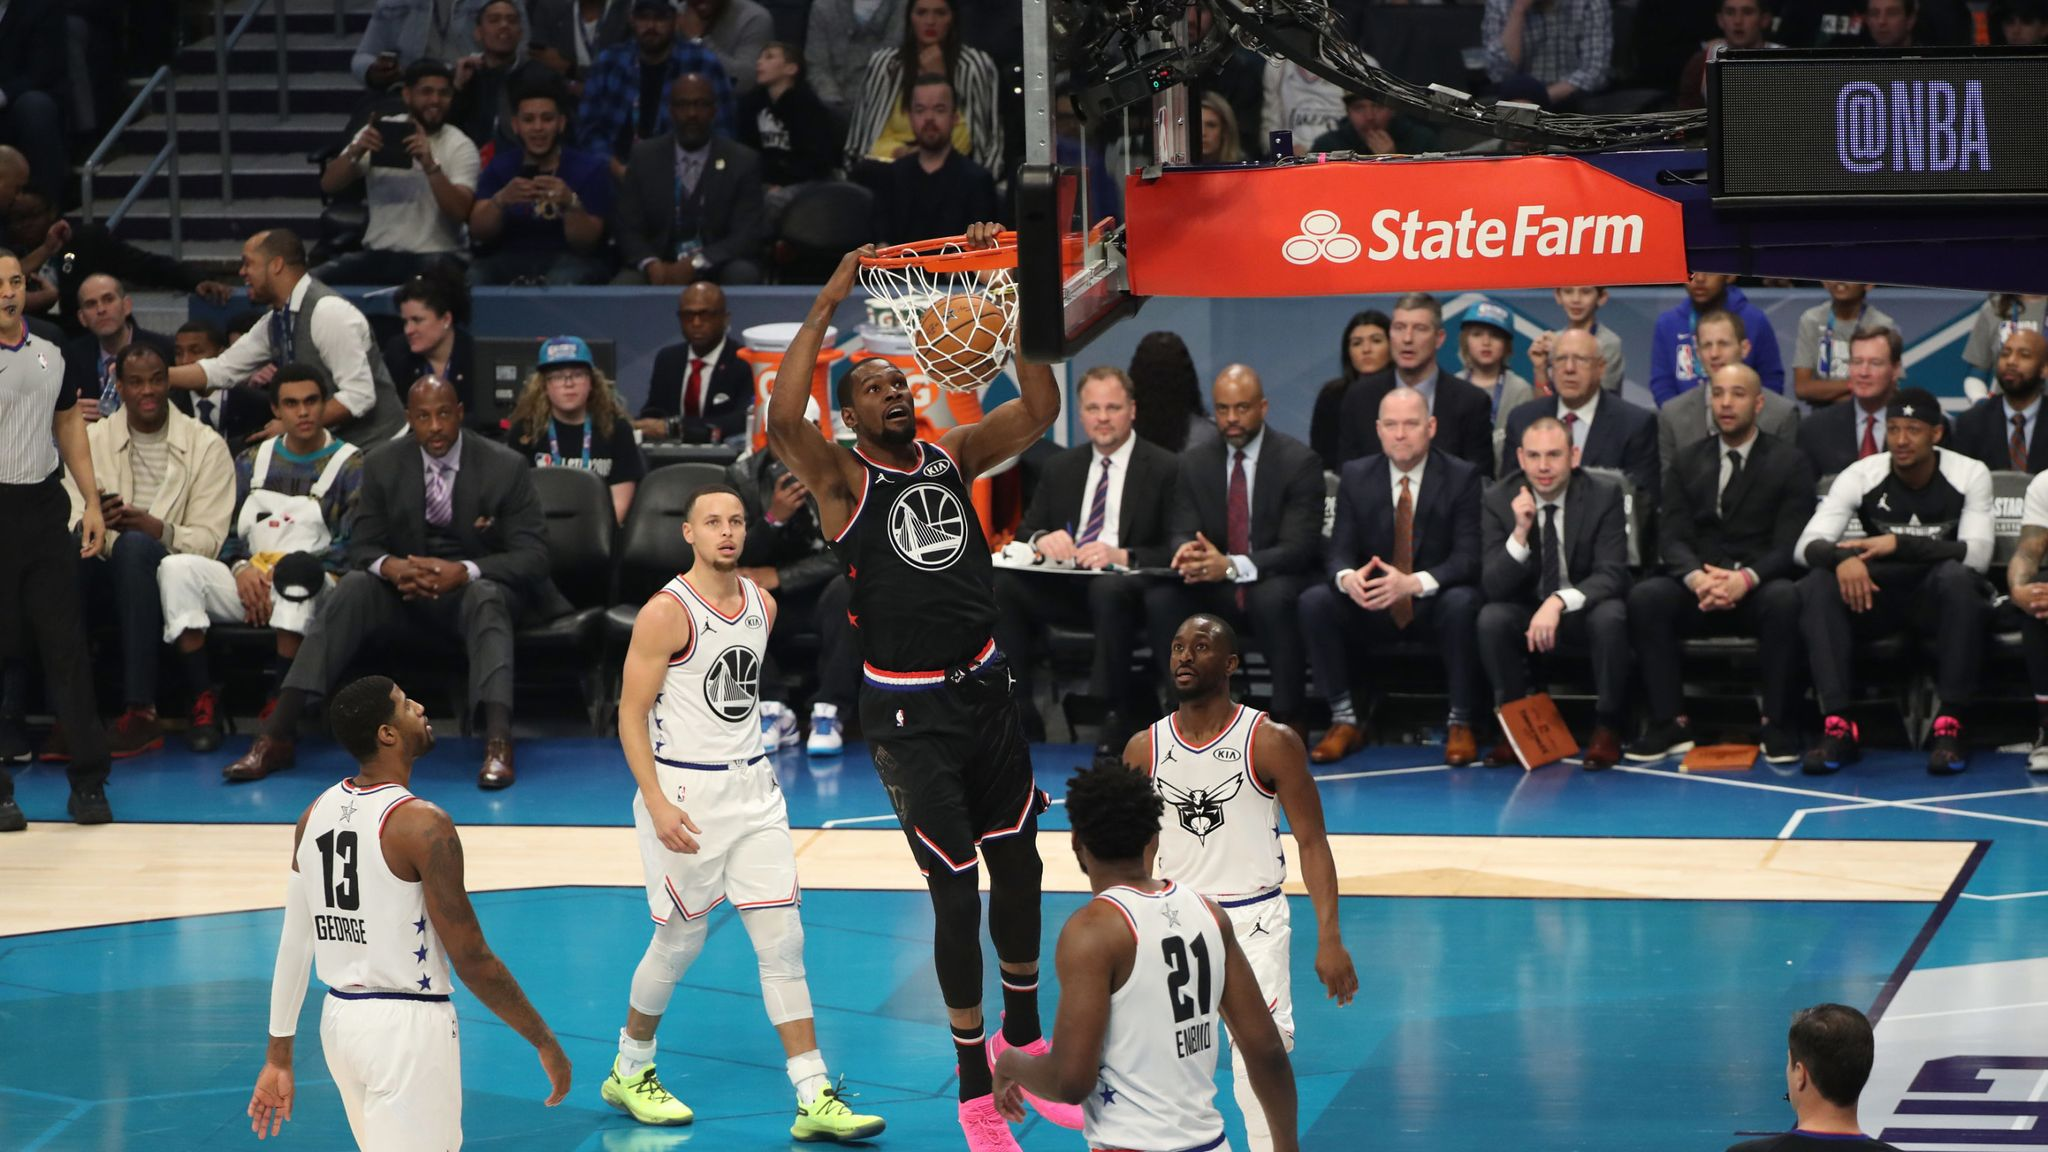 0e6501ddb All-Star 2019  Kevin Durant scores 31 points to lead Team LeBron to victory  in All-Star Game